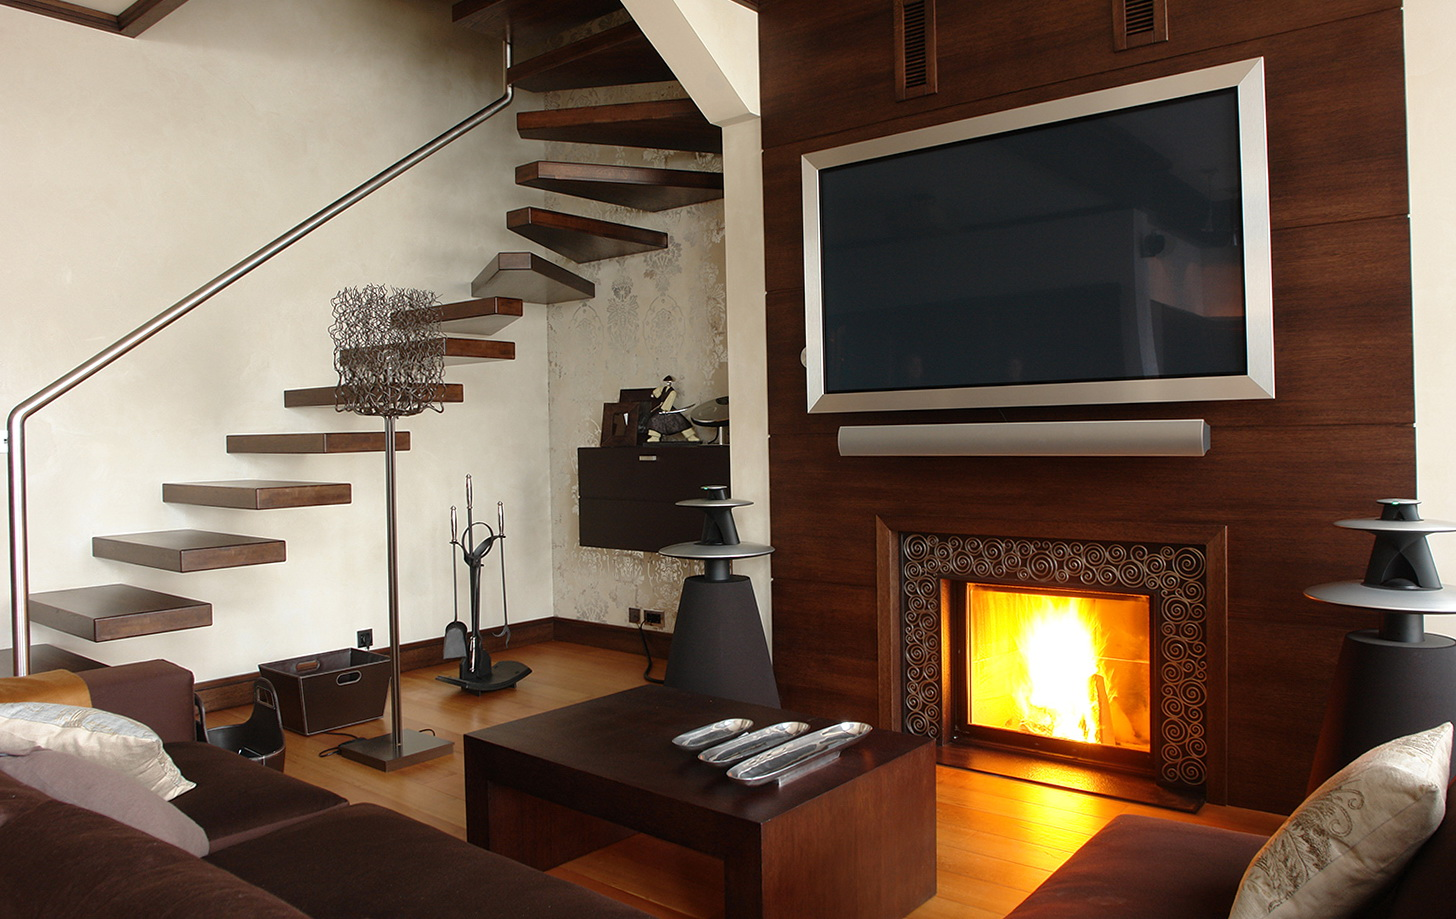 How To Mount Tv Above Fireplace Idea For Basement No Fireplace